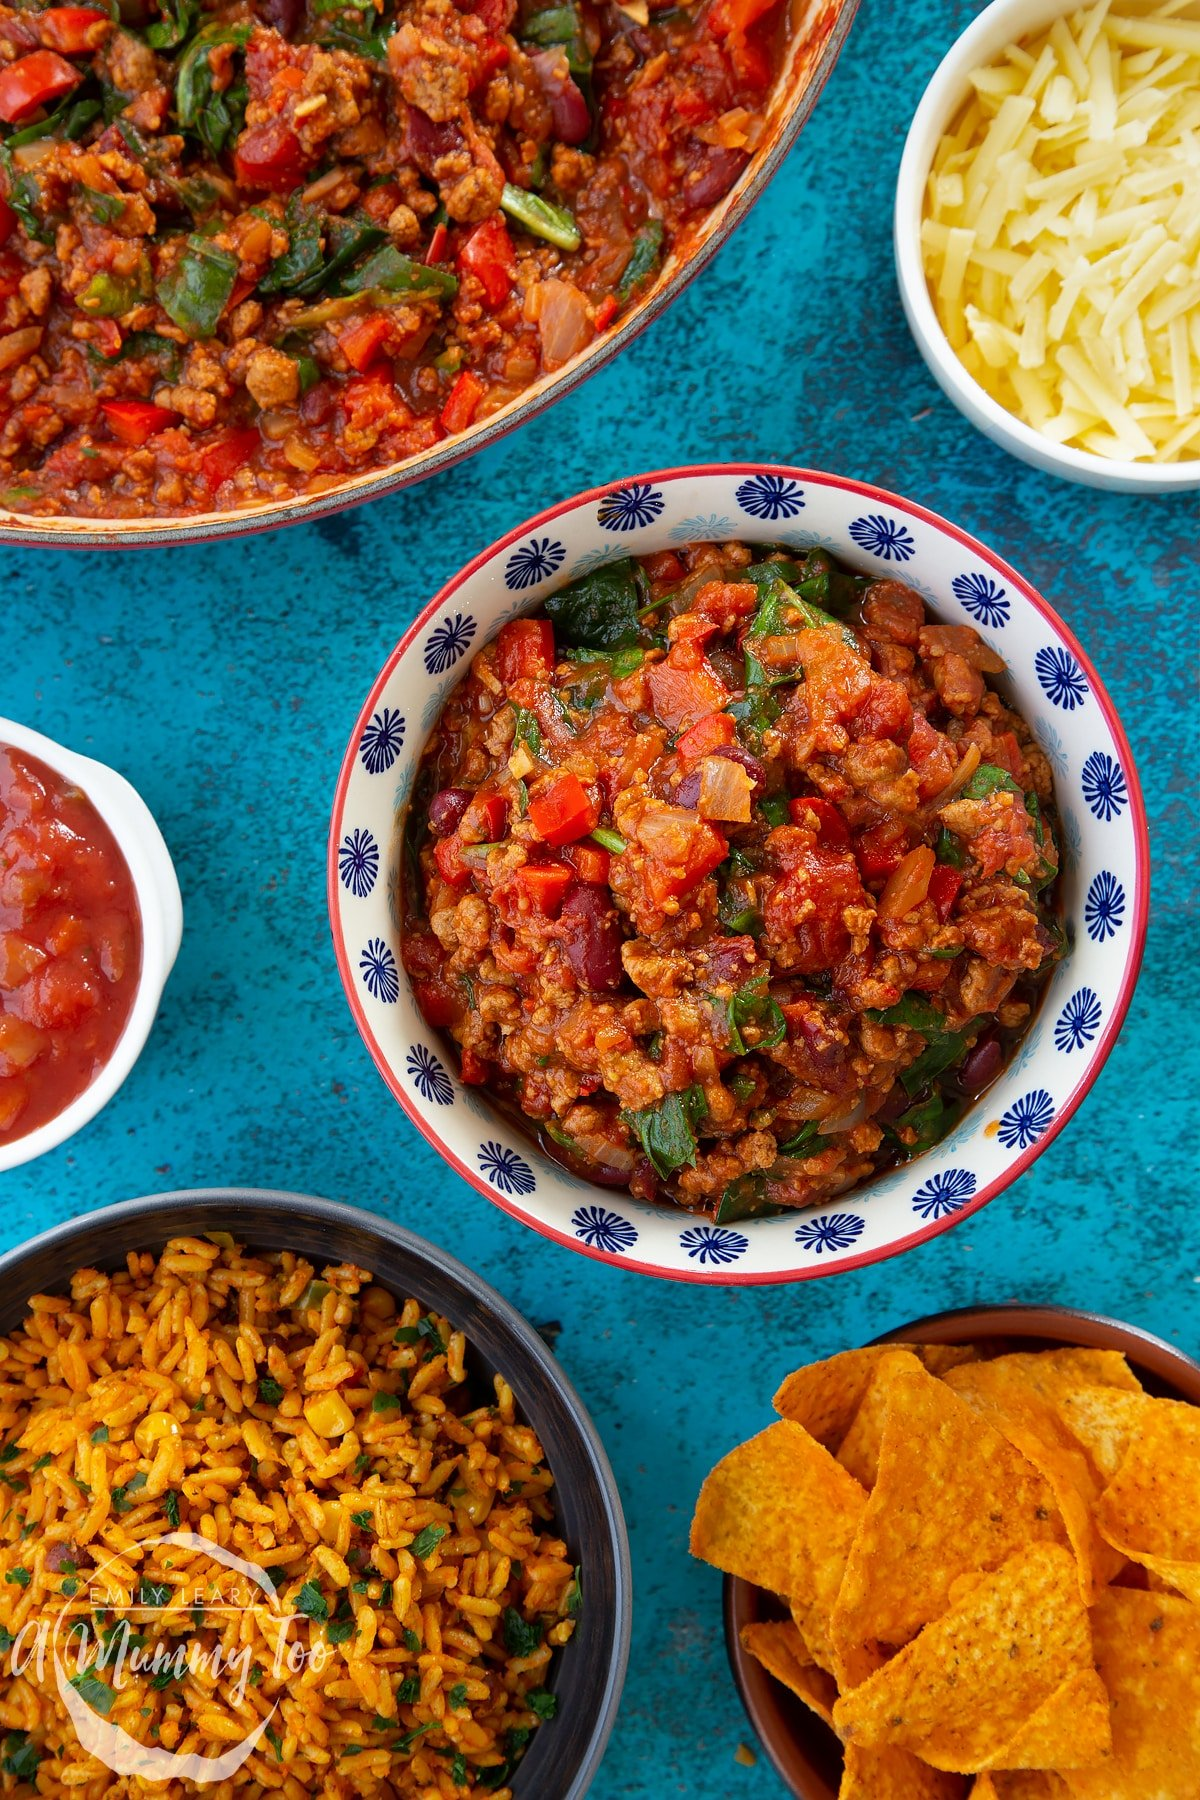 Vegetarian mince chilli in a bowl. Bowls containing tortilla chips, salsa, grated cheese and spicy rice are also shown.